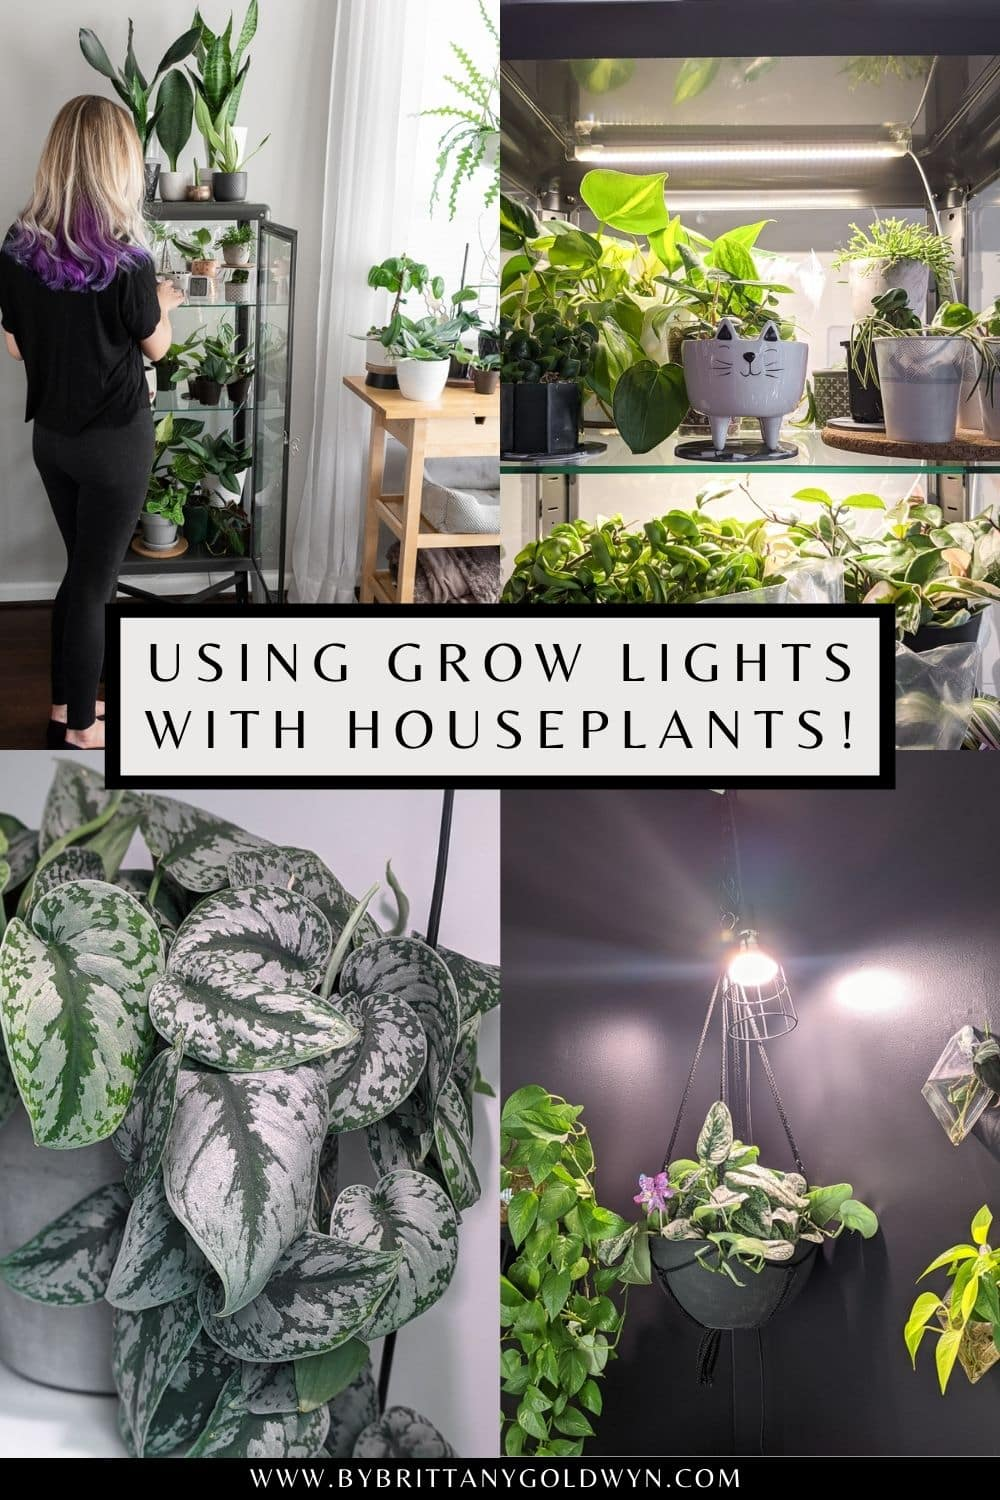 pinnable graphic with images of plants and text about how to use grow lights with houseplants